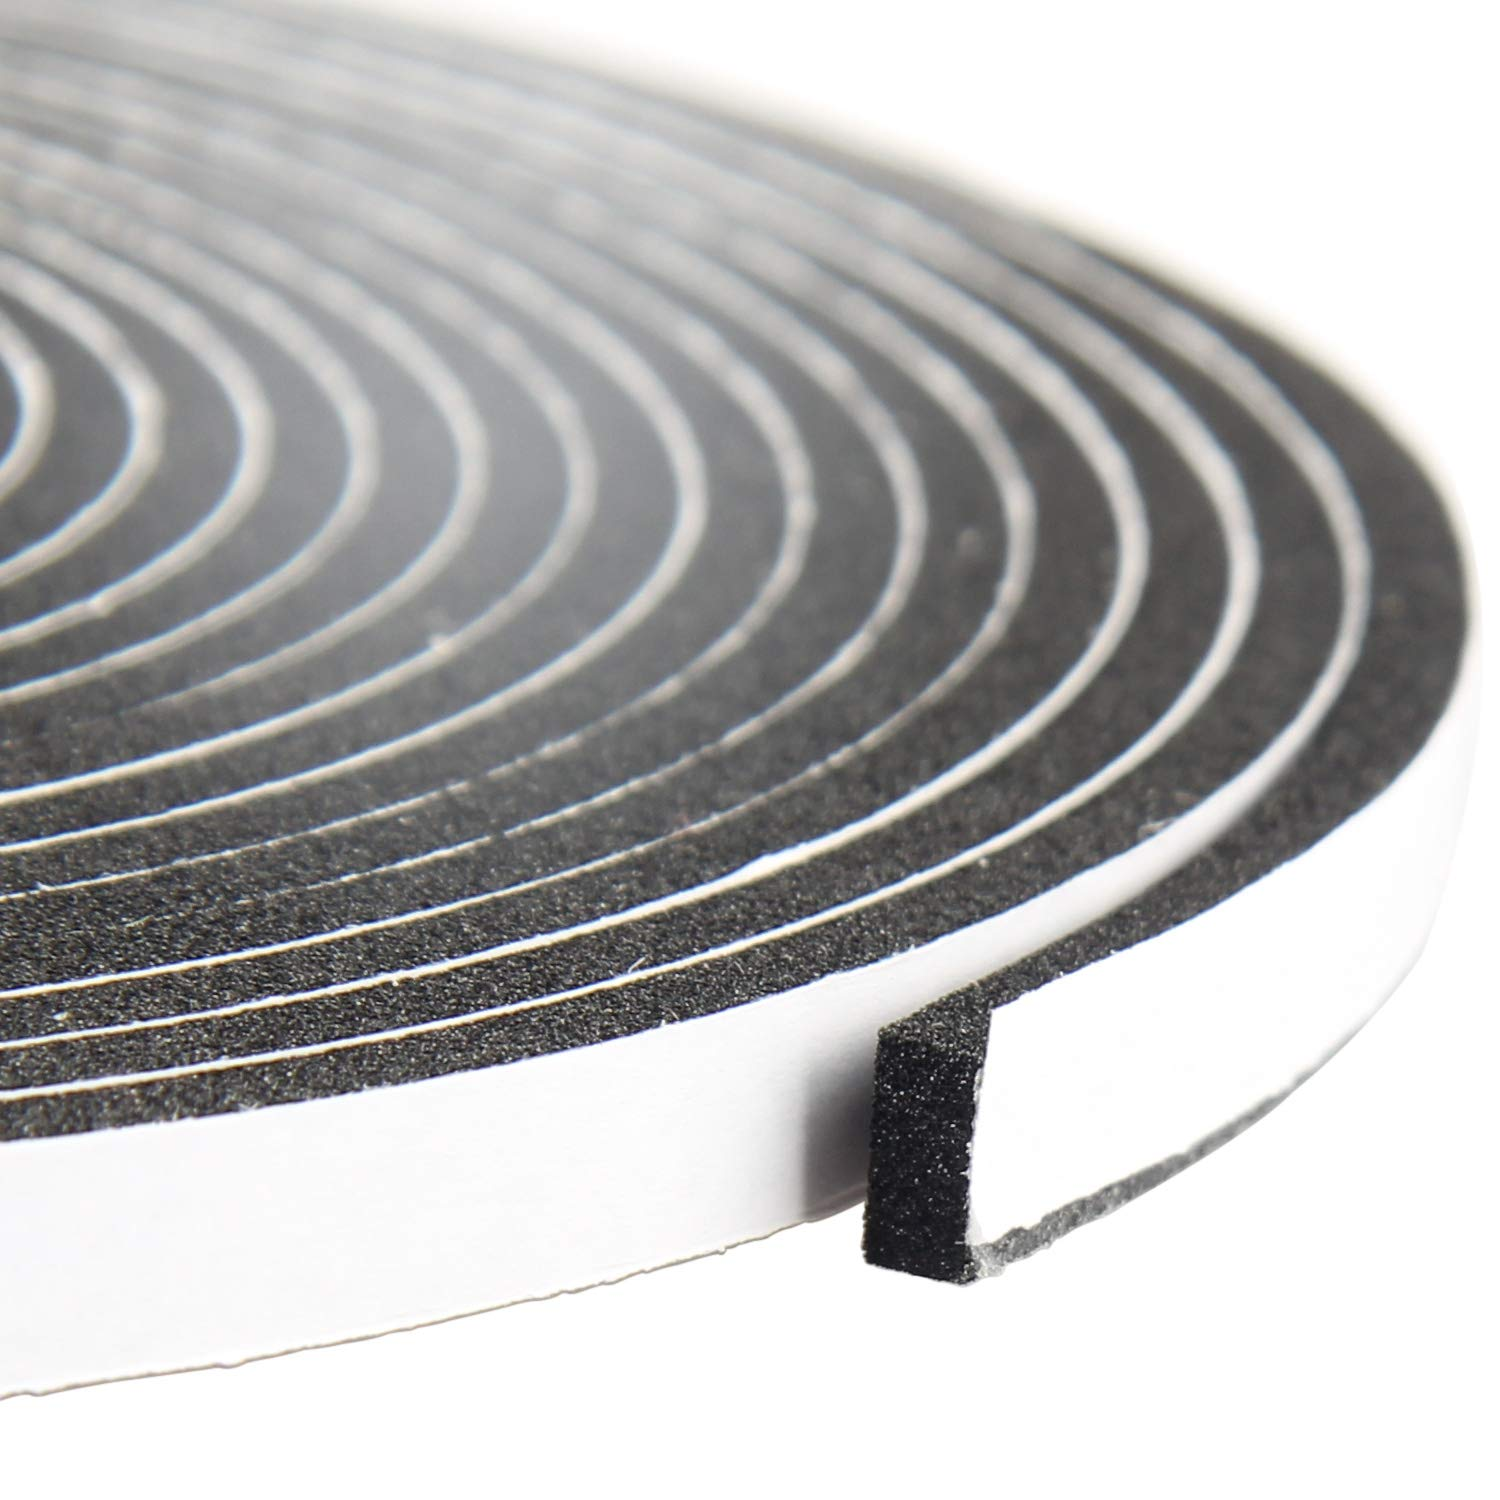 Foam Tape 1/4 Inch Wide X 1/8 Inch Thick, Weather Stripping for Doors and Window High Density Foam Seal Tape Sliding Door Weather Strip, Total 50 Feet Long (3 Strips of 16.5 Ft Long Each)